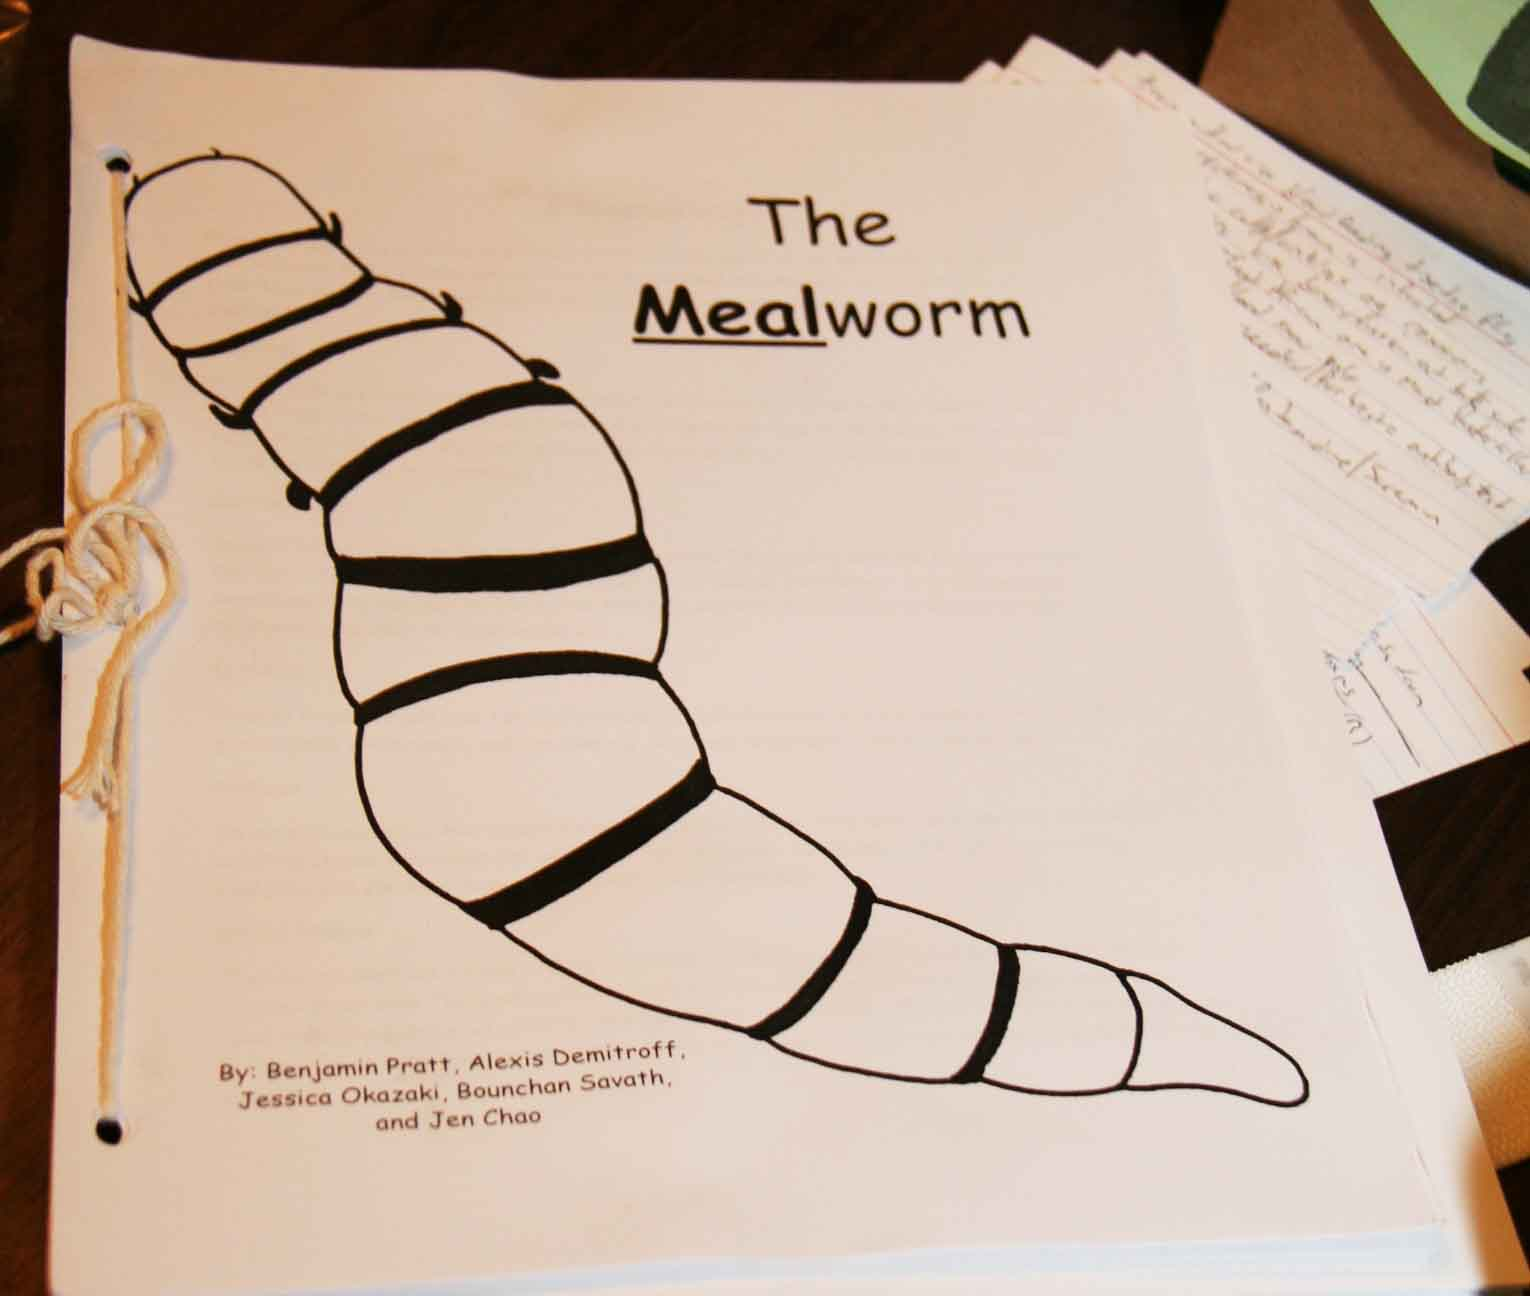 Harmon Johar, a junior studying entomology at the UGA College of Agricultural and Environmental Sciences founded World Entomophagy — an international company that supplies edible insects to chefs. They also distribute recipes like the ones in this Meal Worm cookbook.